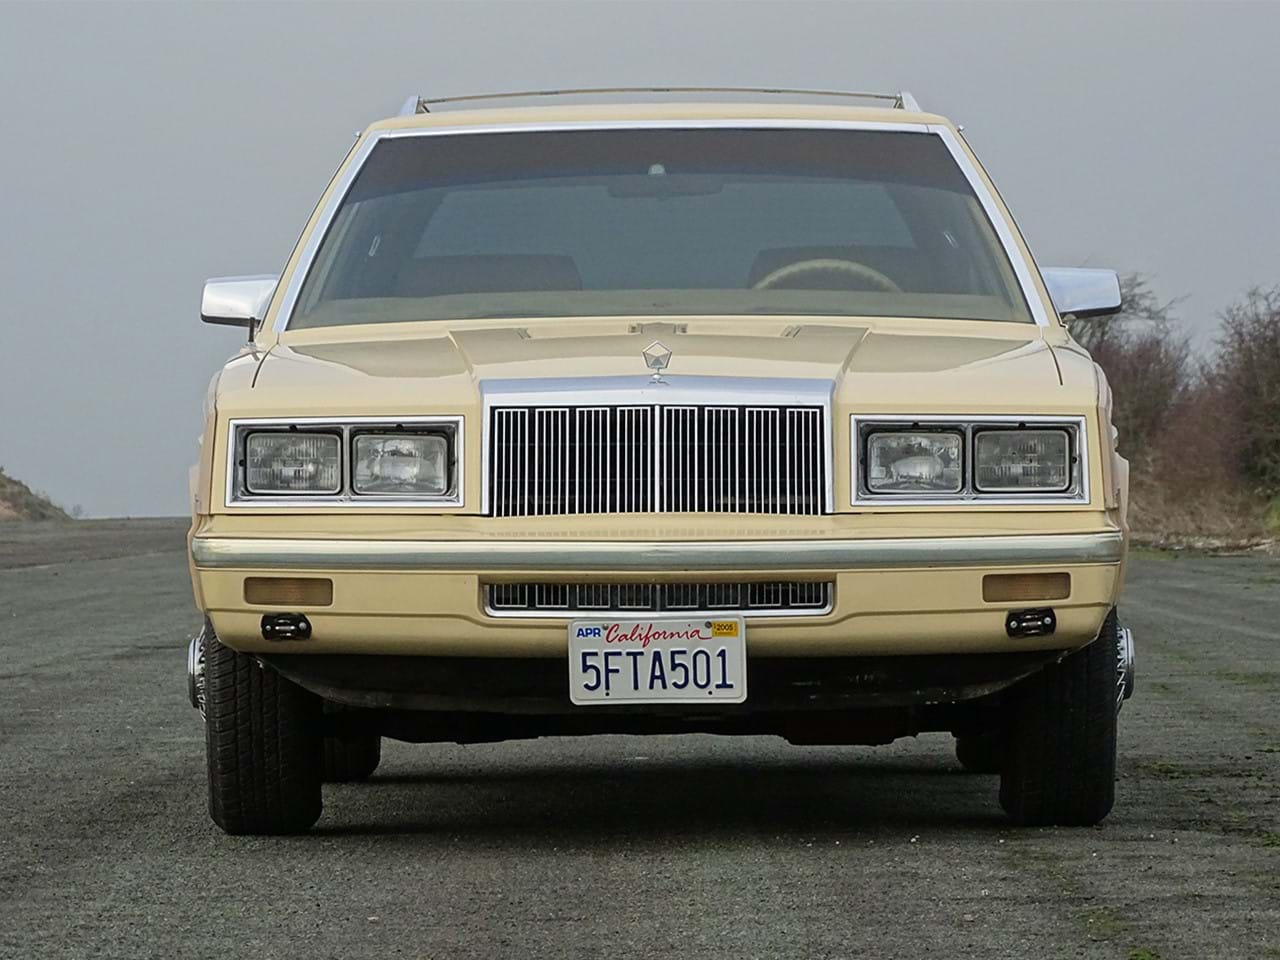 1985 Chrysler LeBaron Town and Country Wagon front grille